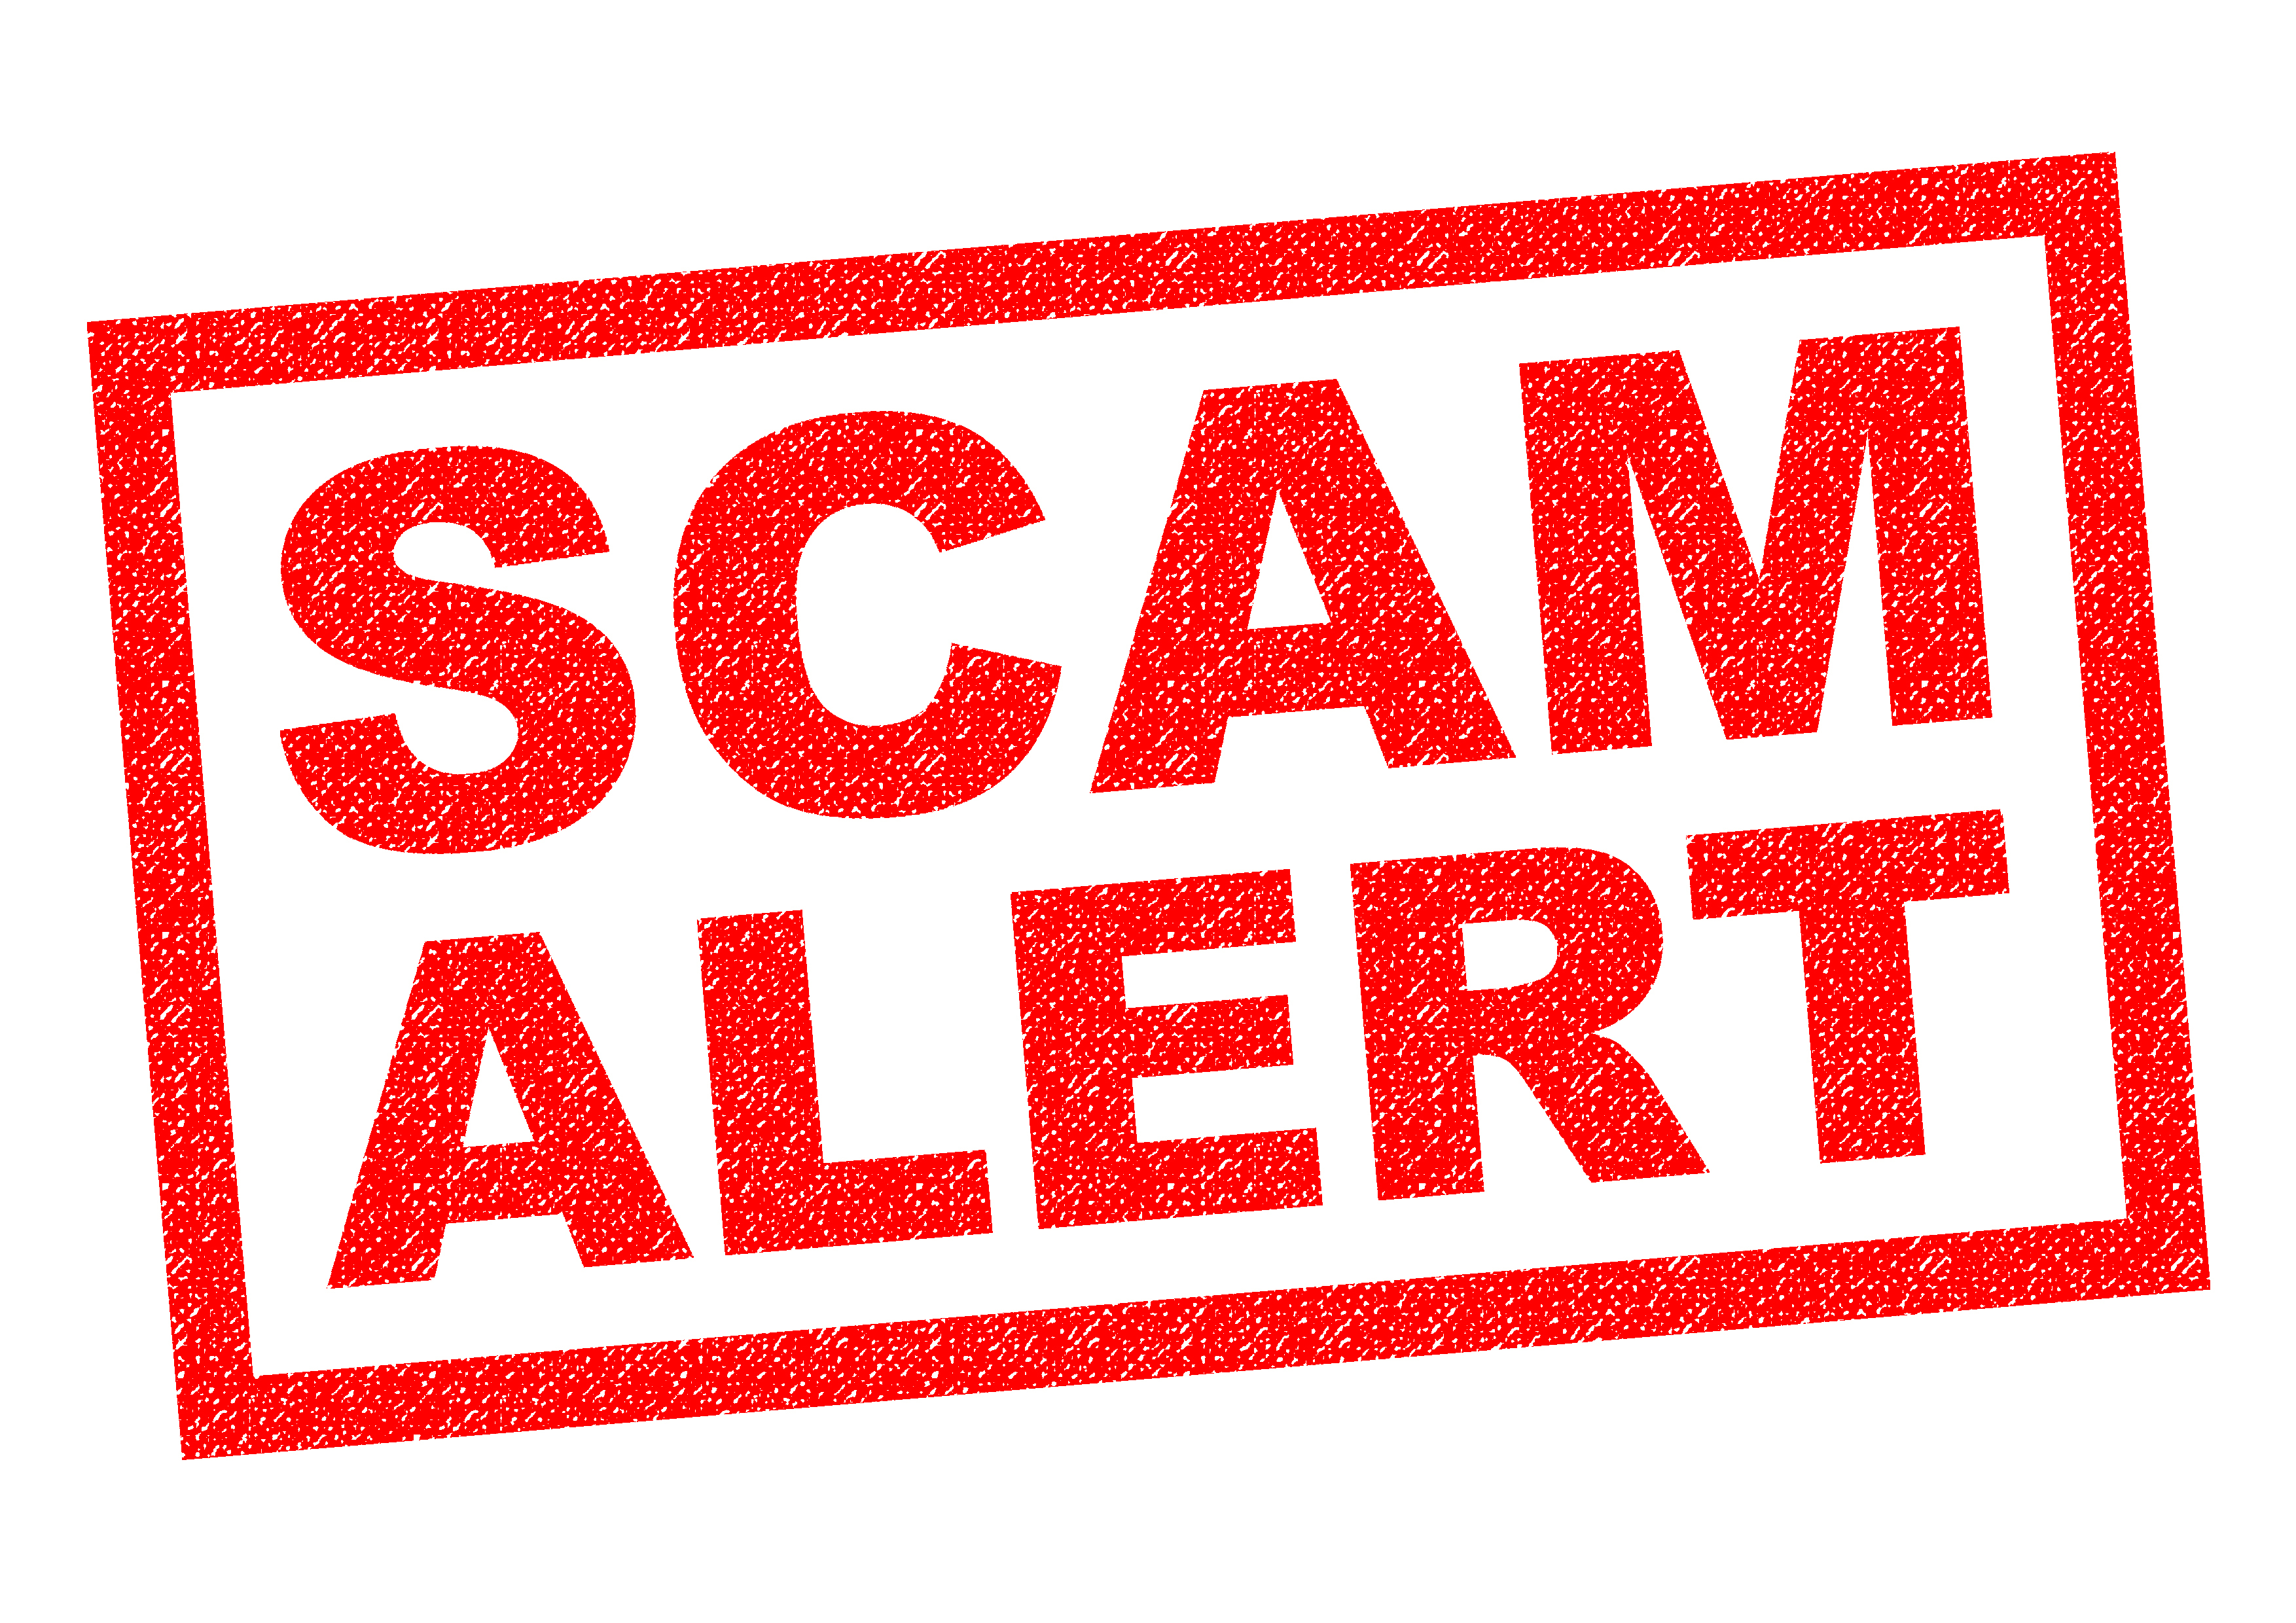 Australian Communications and Media Authority has my full support on stamping out scams